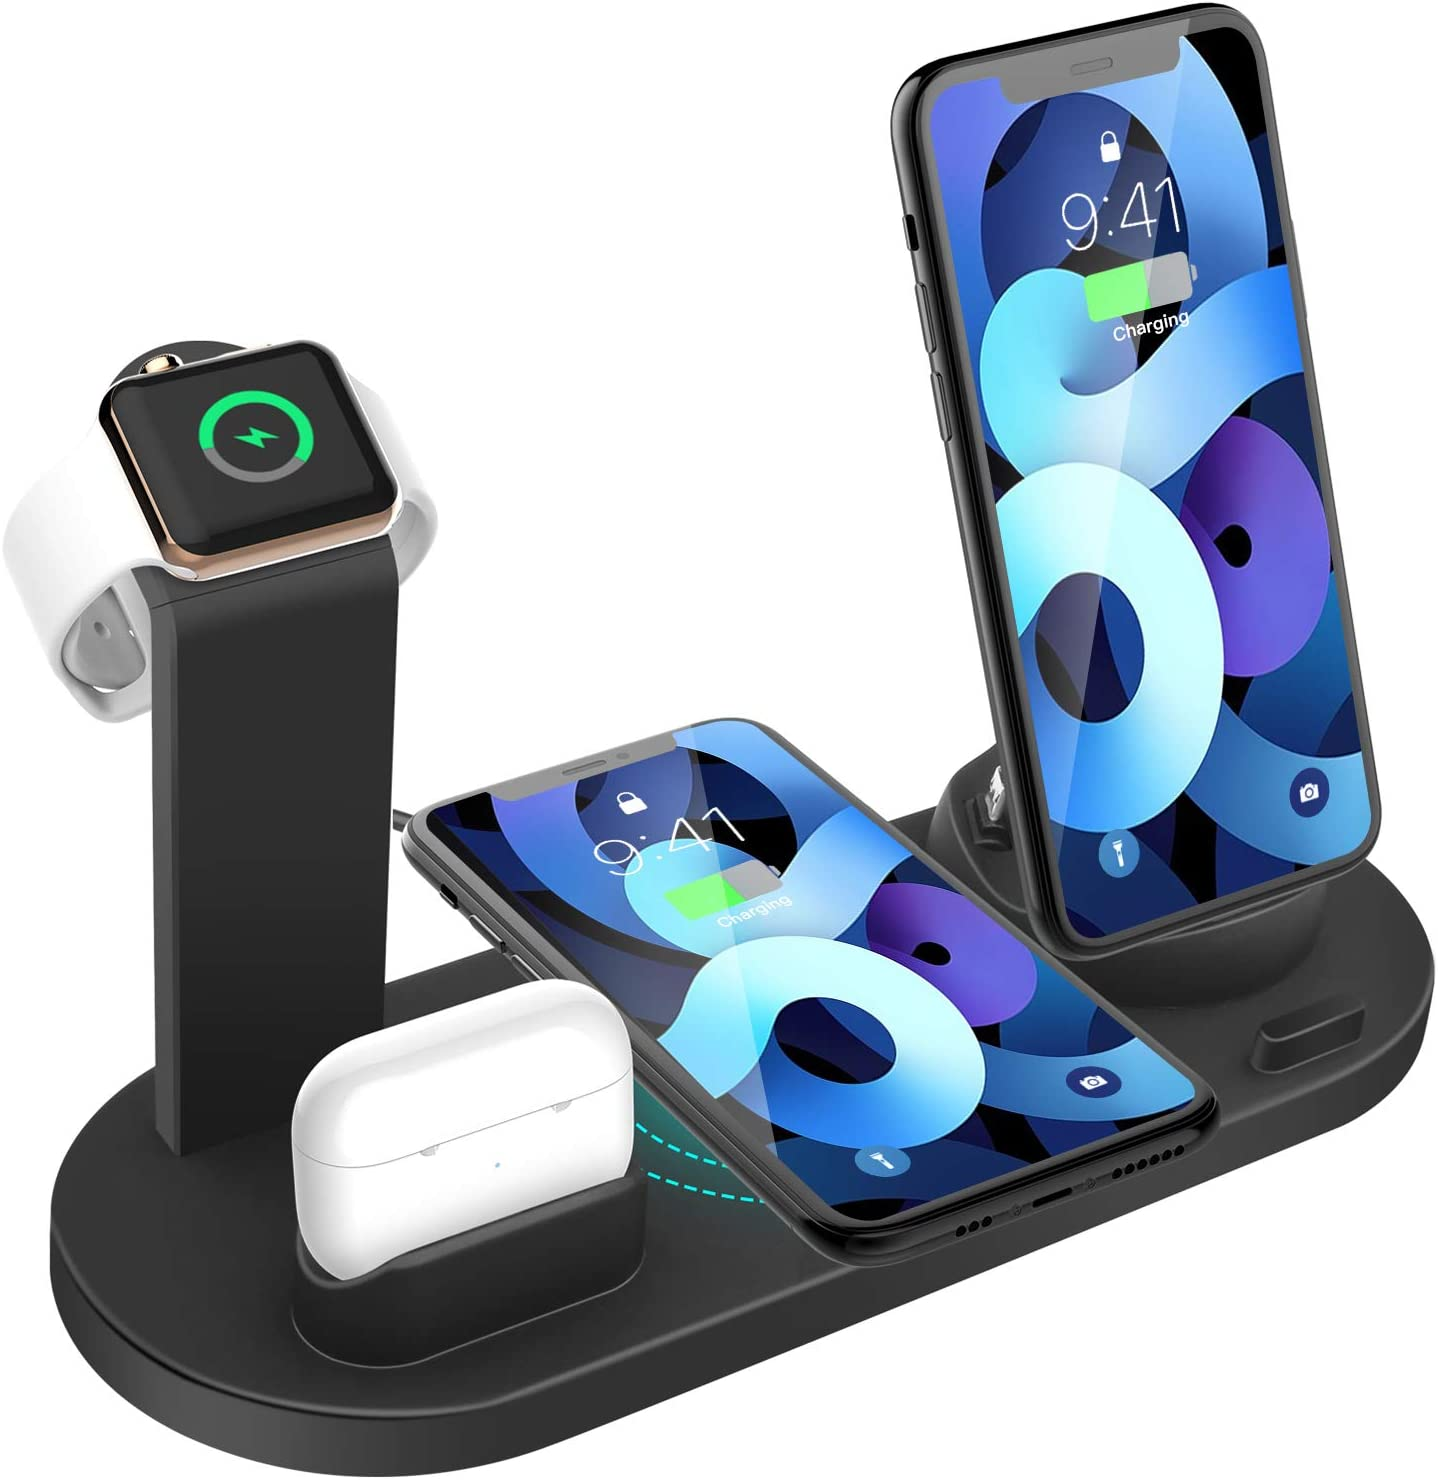 MANKIW Wireless Charging Station Fast Charging for iPhone 11//11 Pro Max//XR//XS Max//Xs for iWatch Series 5//4//3//2//1 IWatch /& AirPods /& Pencil Charging Dock Station 4 in 1 Black